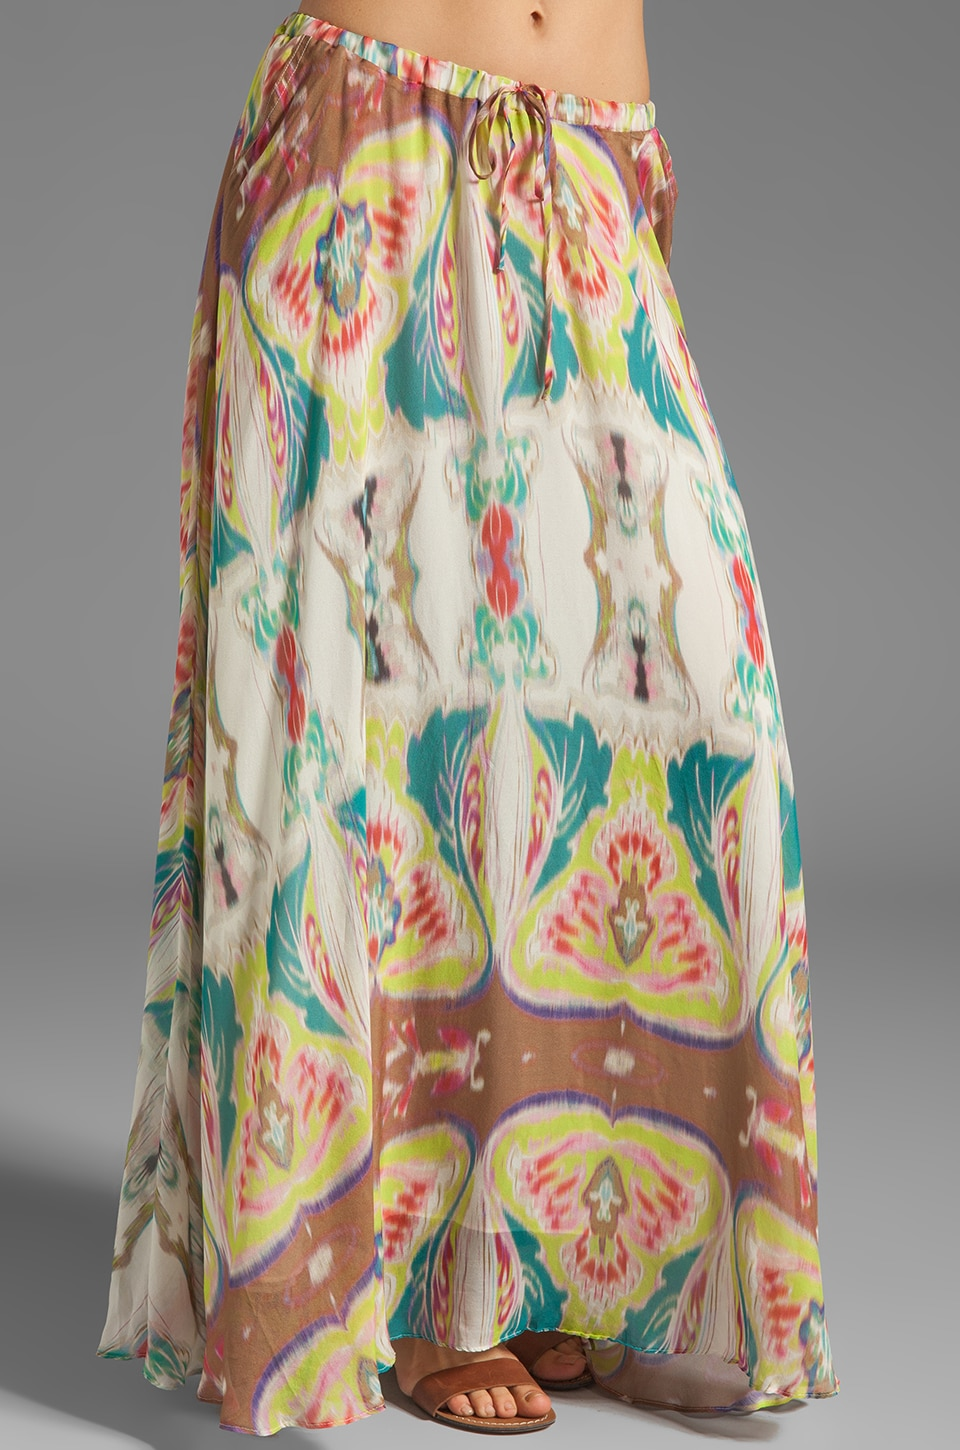 Da-Nang Drawstring Skirt in Kaleidoscope